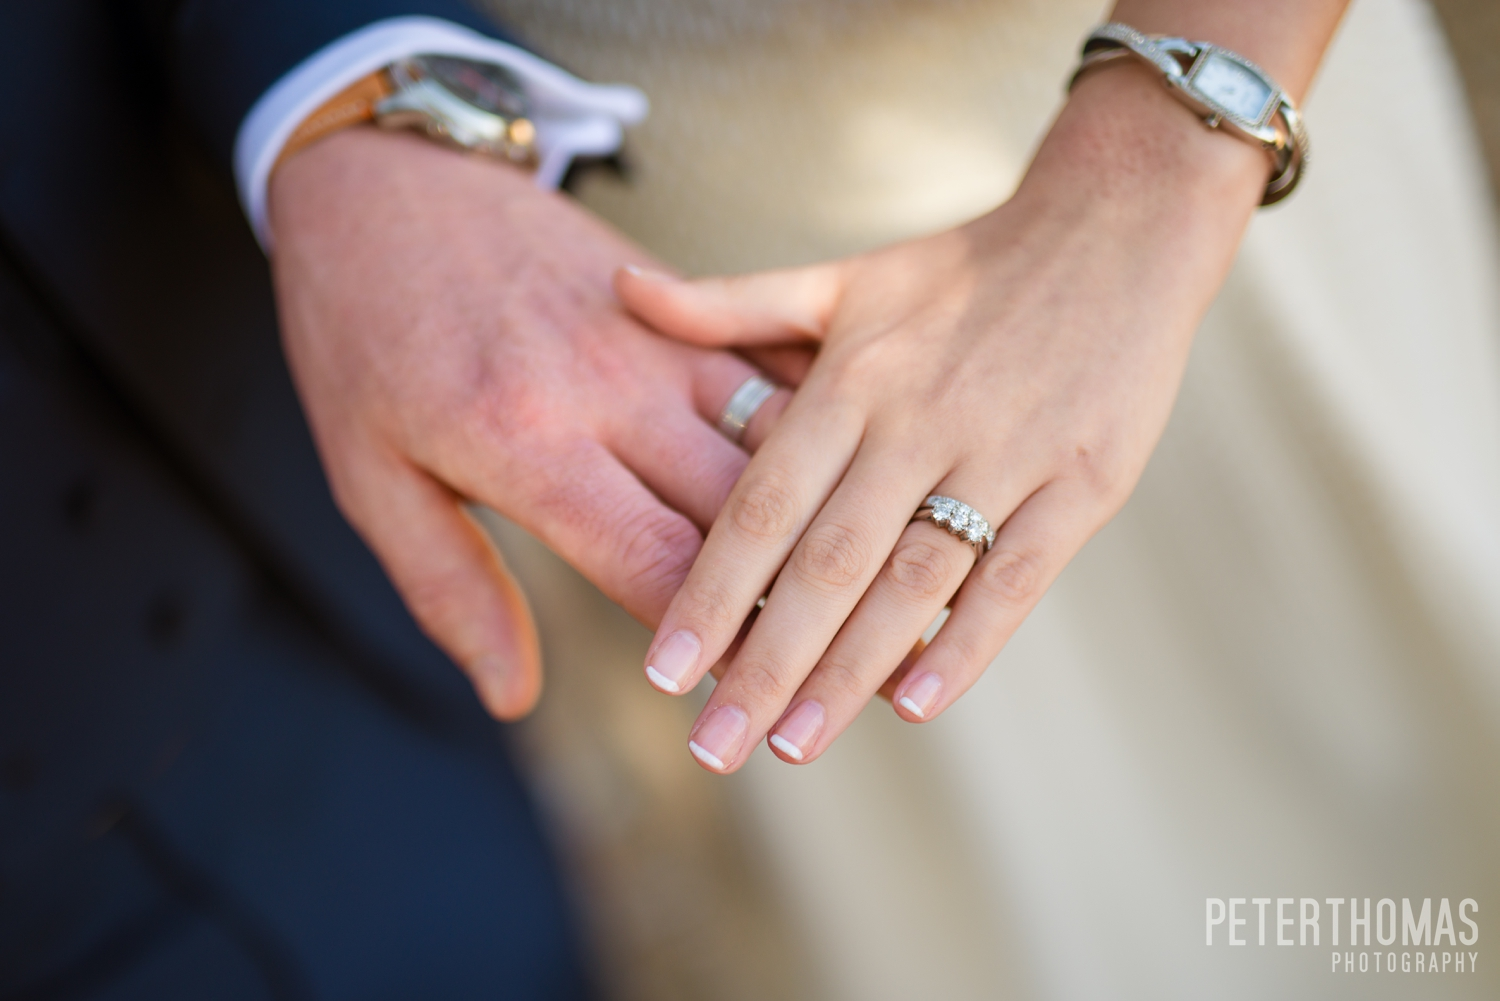 Put a ring on it! Choosing wedding rings in Northern Ireland | Peter ...